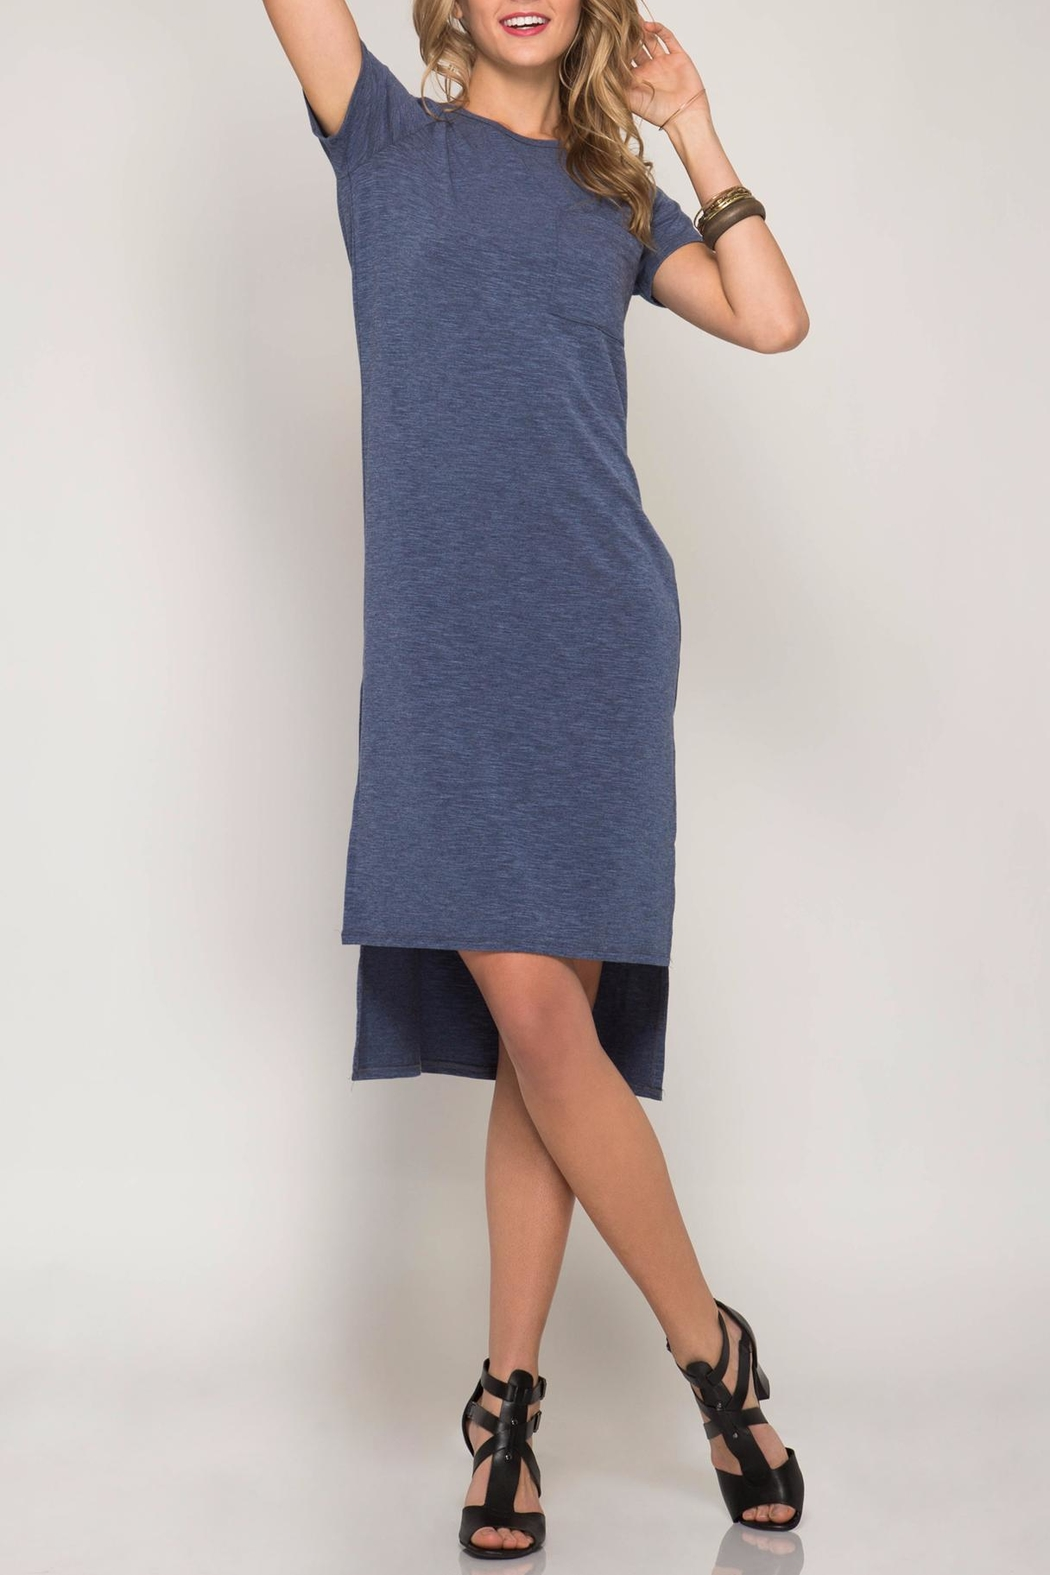 She + Sky High-Low Tee Dress - Front Cropped Image